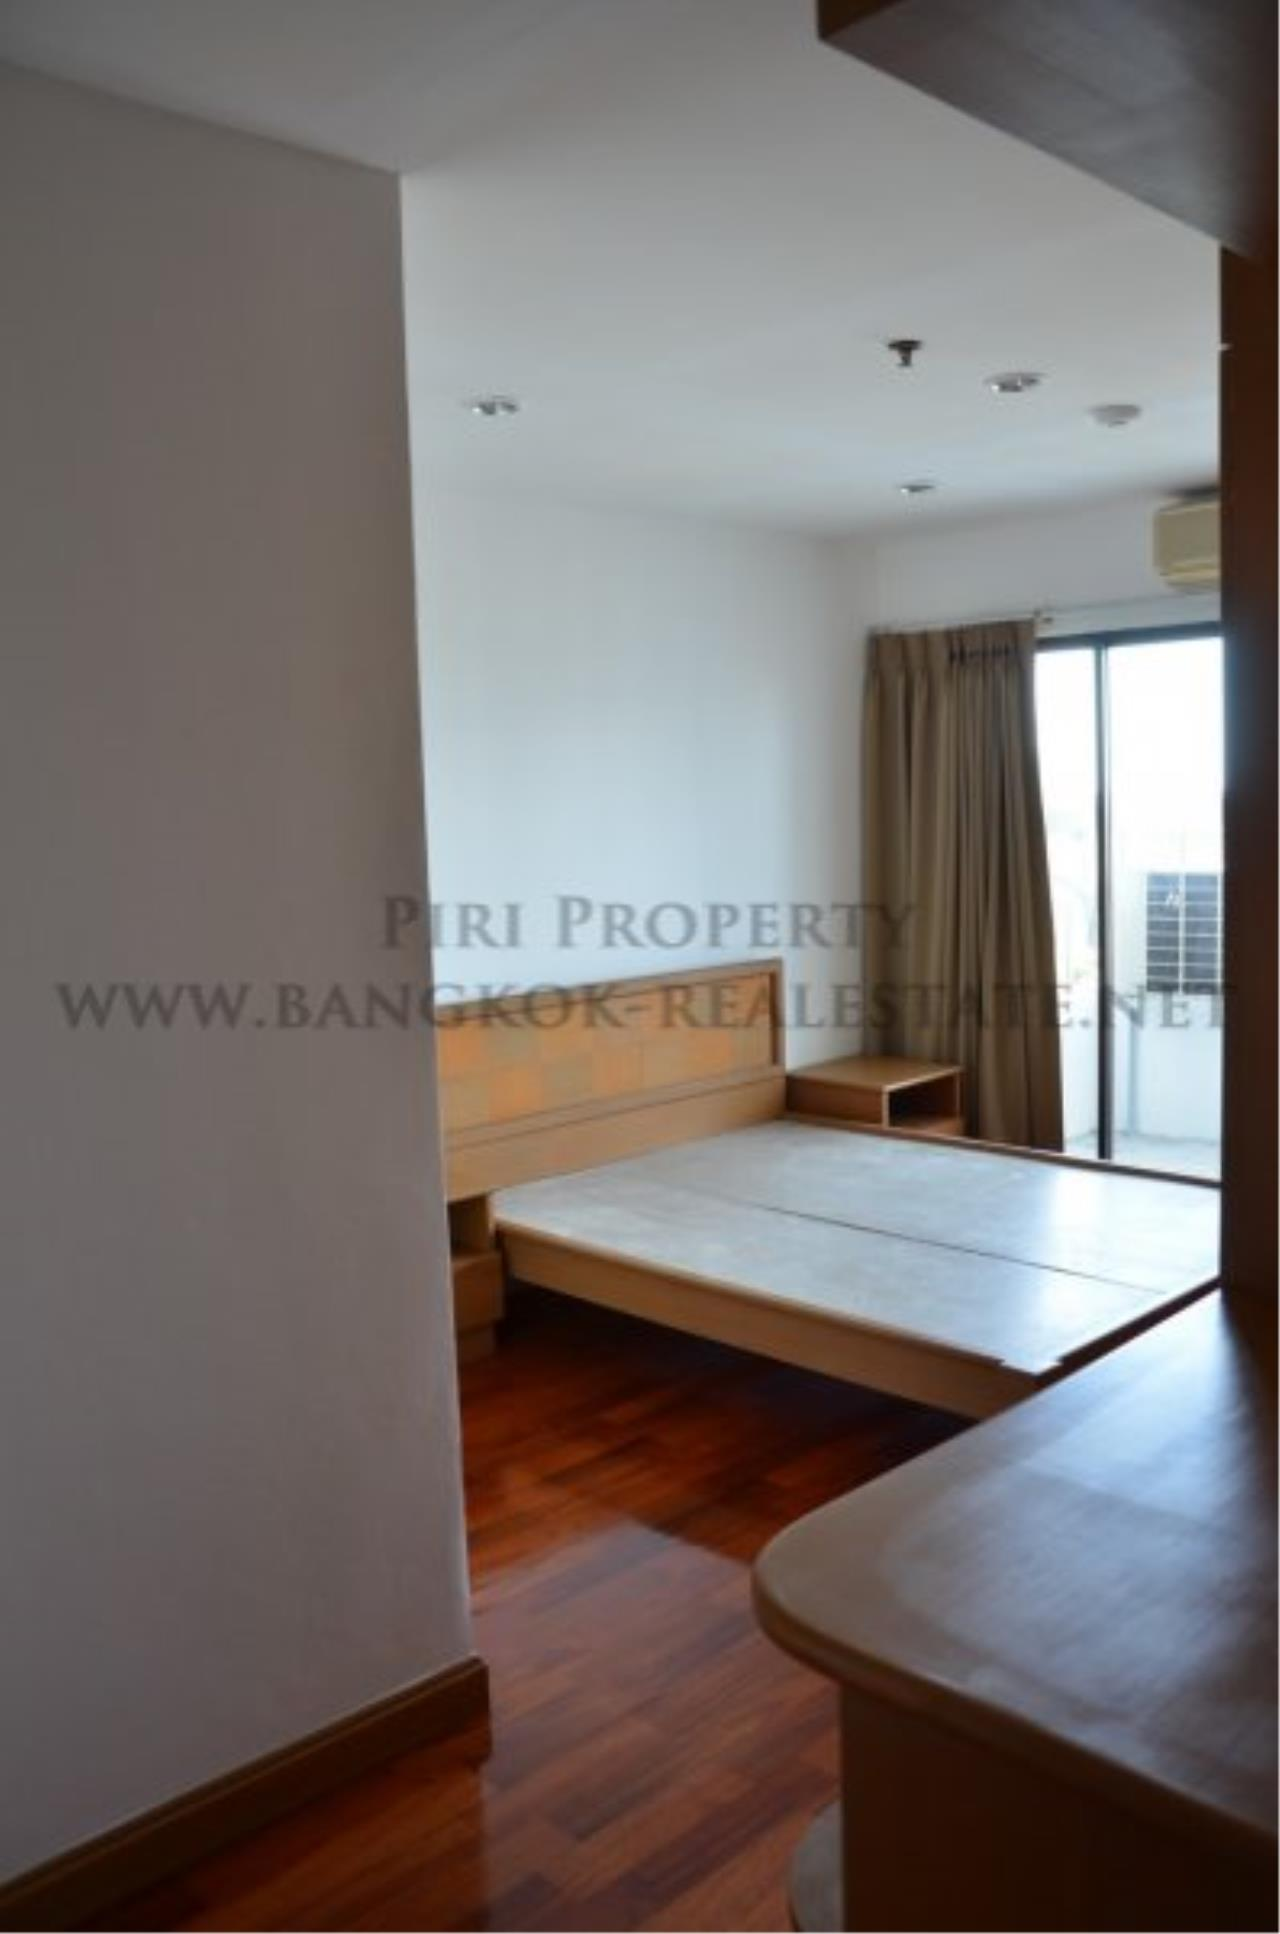 Piri Property Agency's Spacious 3 Bedroom Condo in Ekkamai - 128 SQM for 50K - Top View Tower - 30th Floor 15